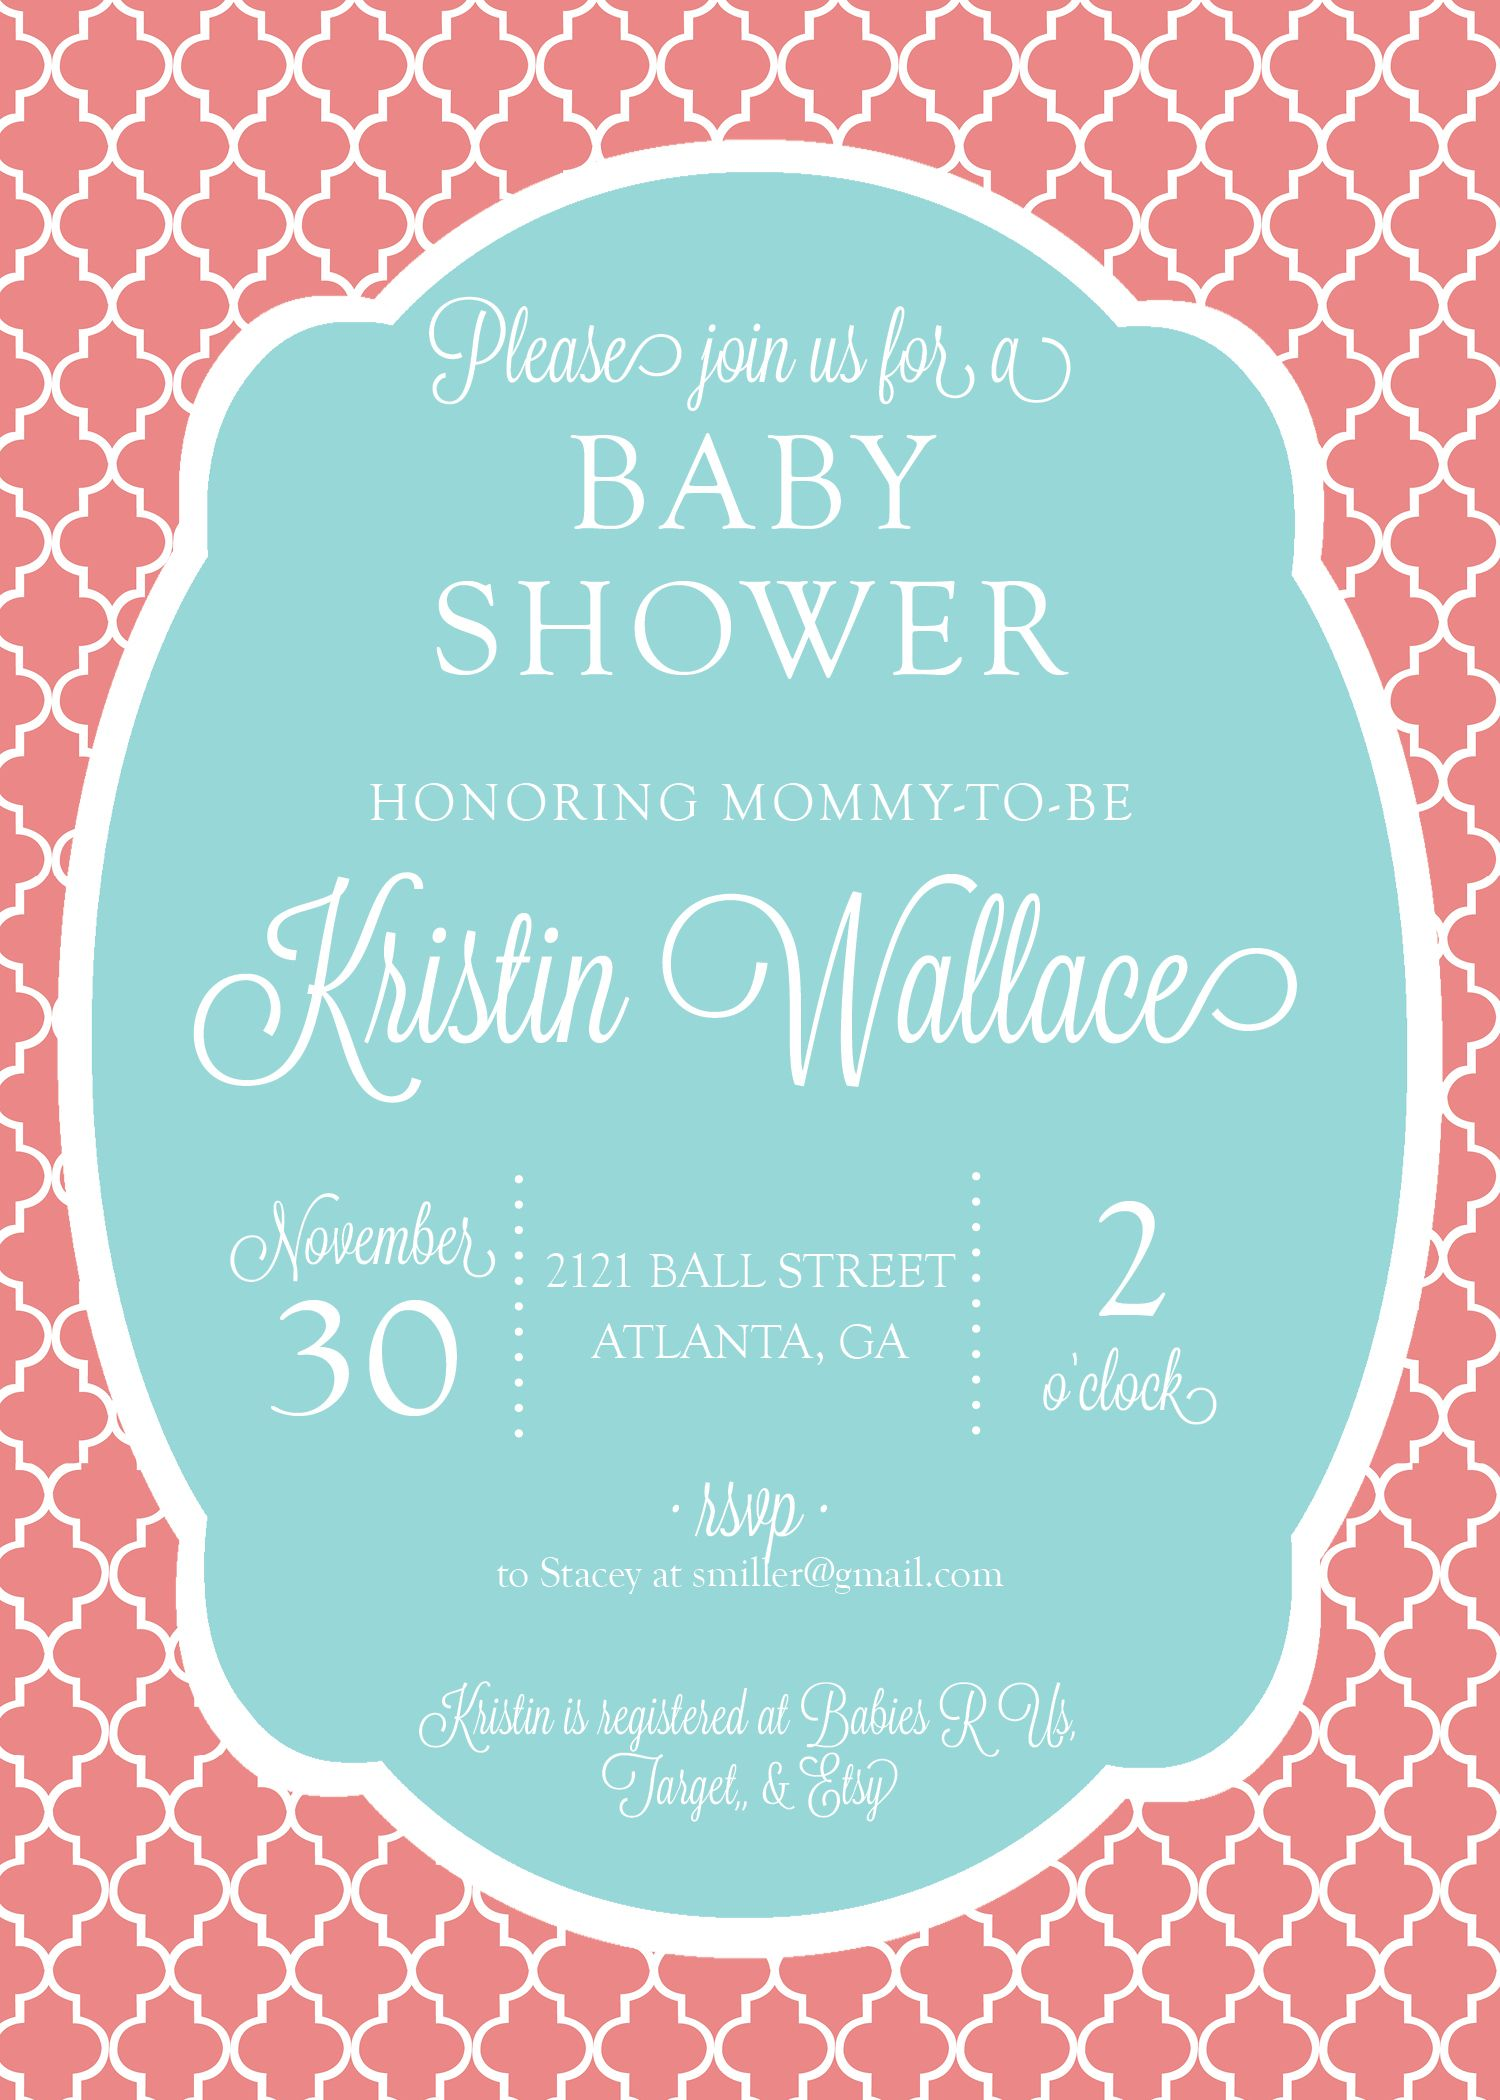 Coral & Teal Bridal or Baby Shower Invitation | Baby | Pinterest ...